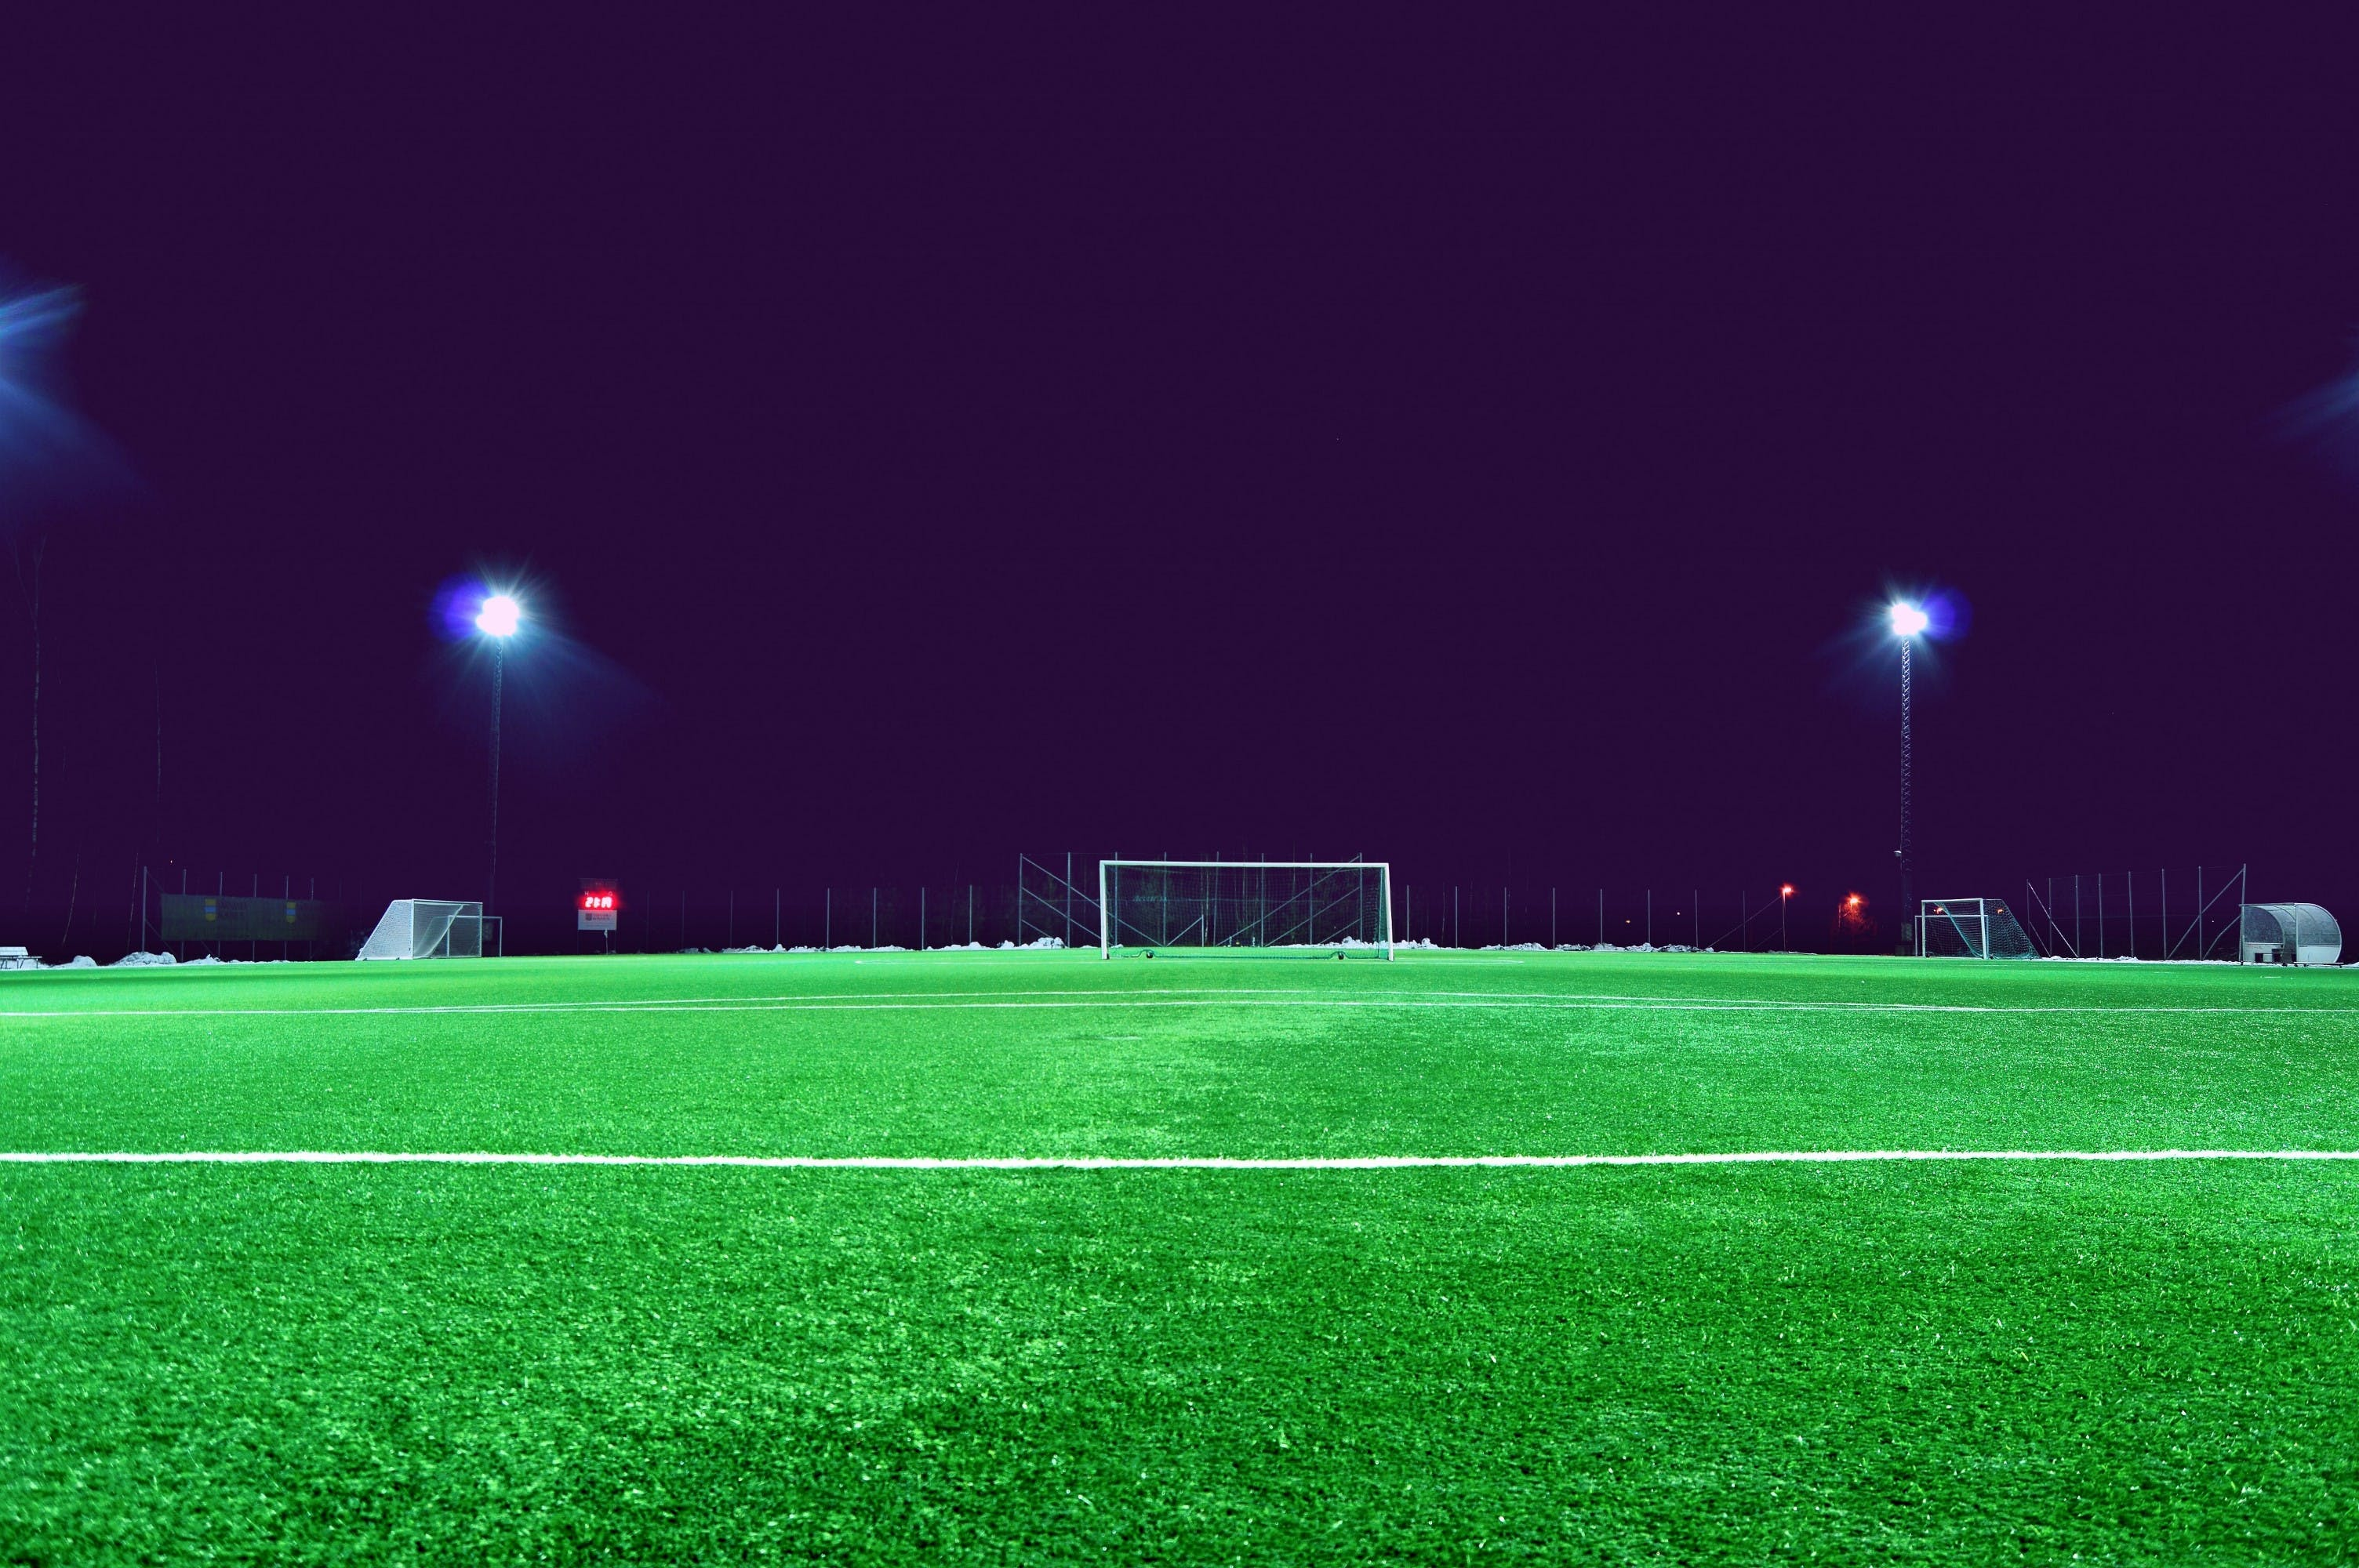 evening, field, football field